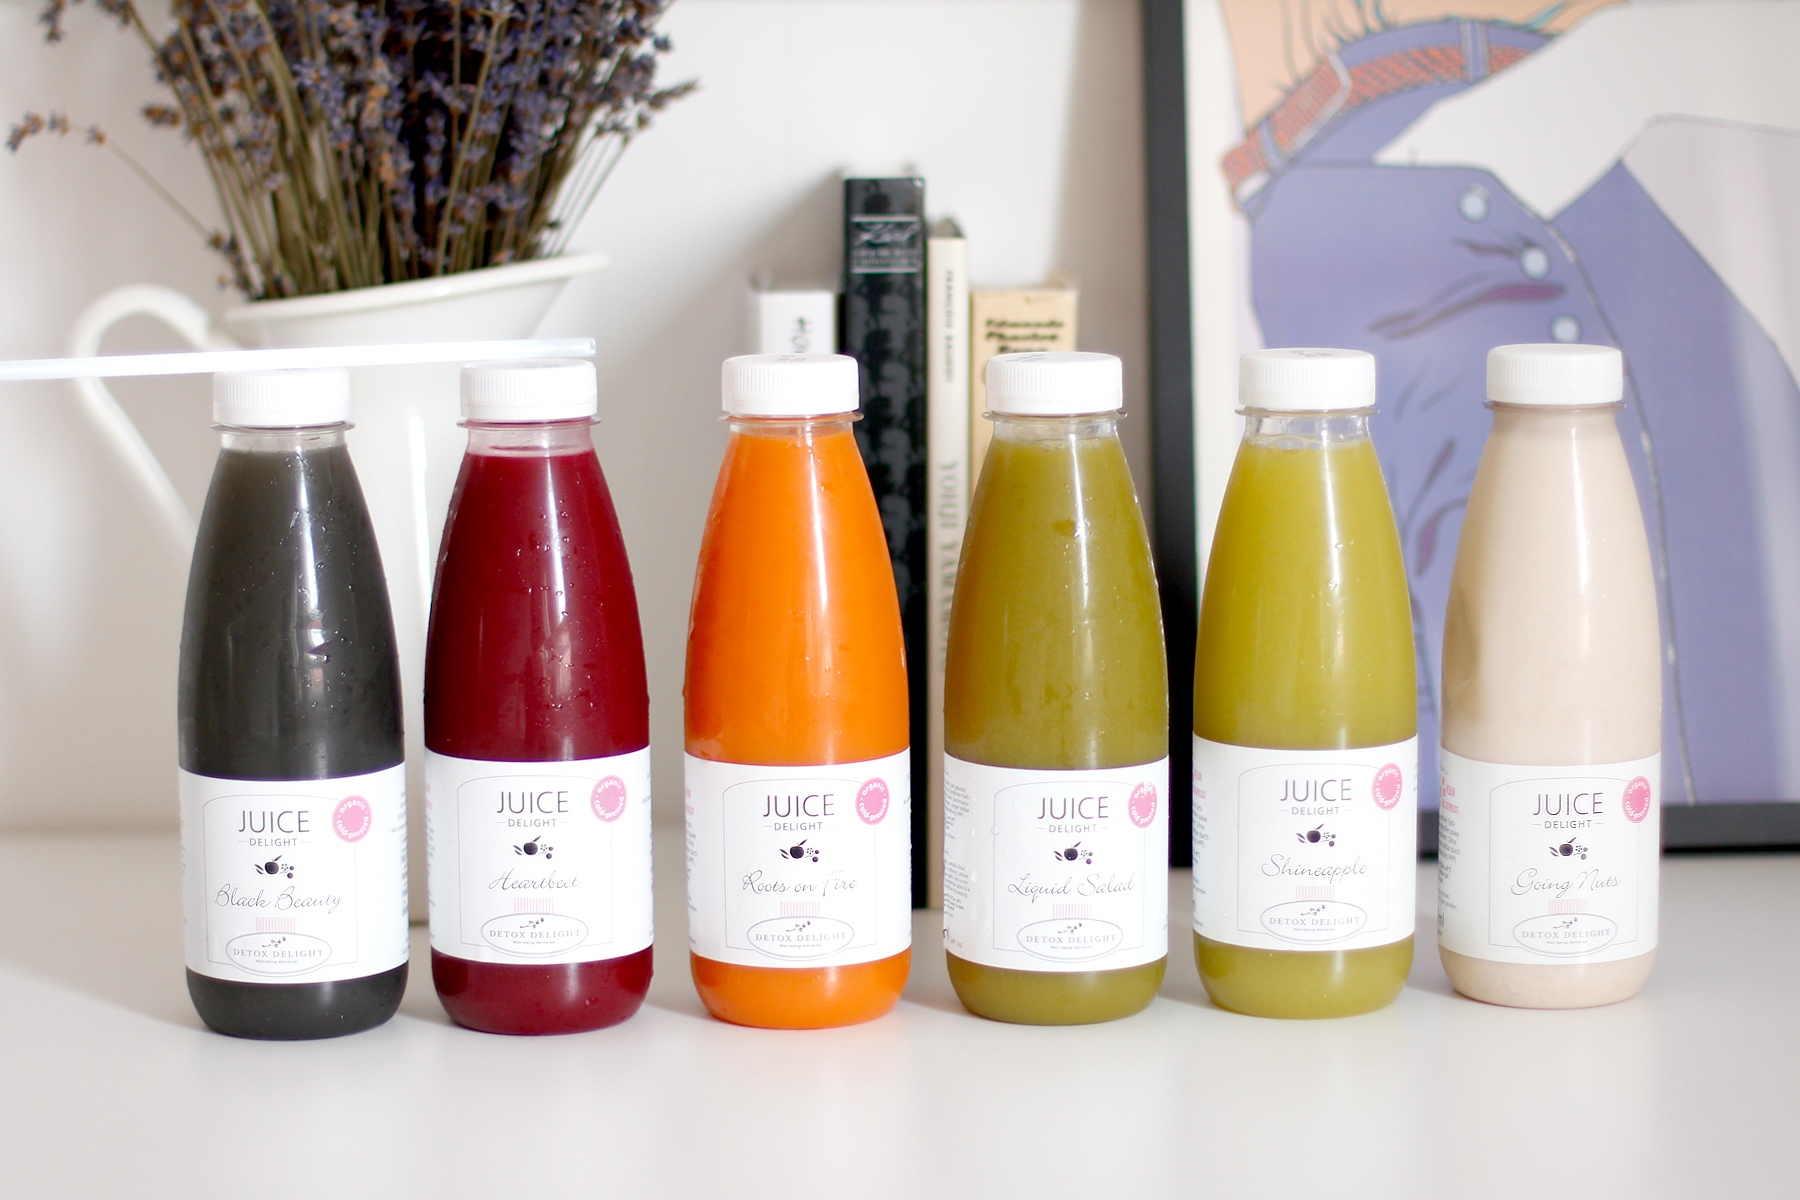 <!--:en-->My 5-Day Detox Delight Juice Cleanse<!--:--><!--:de-->Meine 5-Tage Detox Delight Saftkur<!--:-->